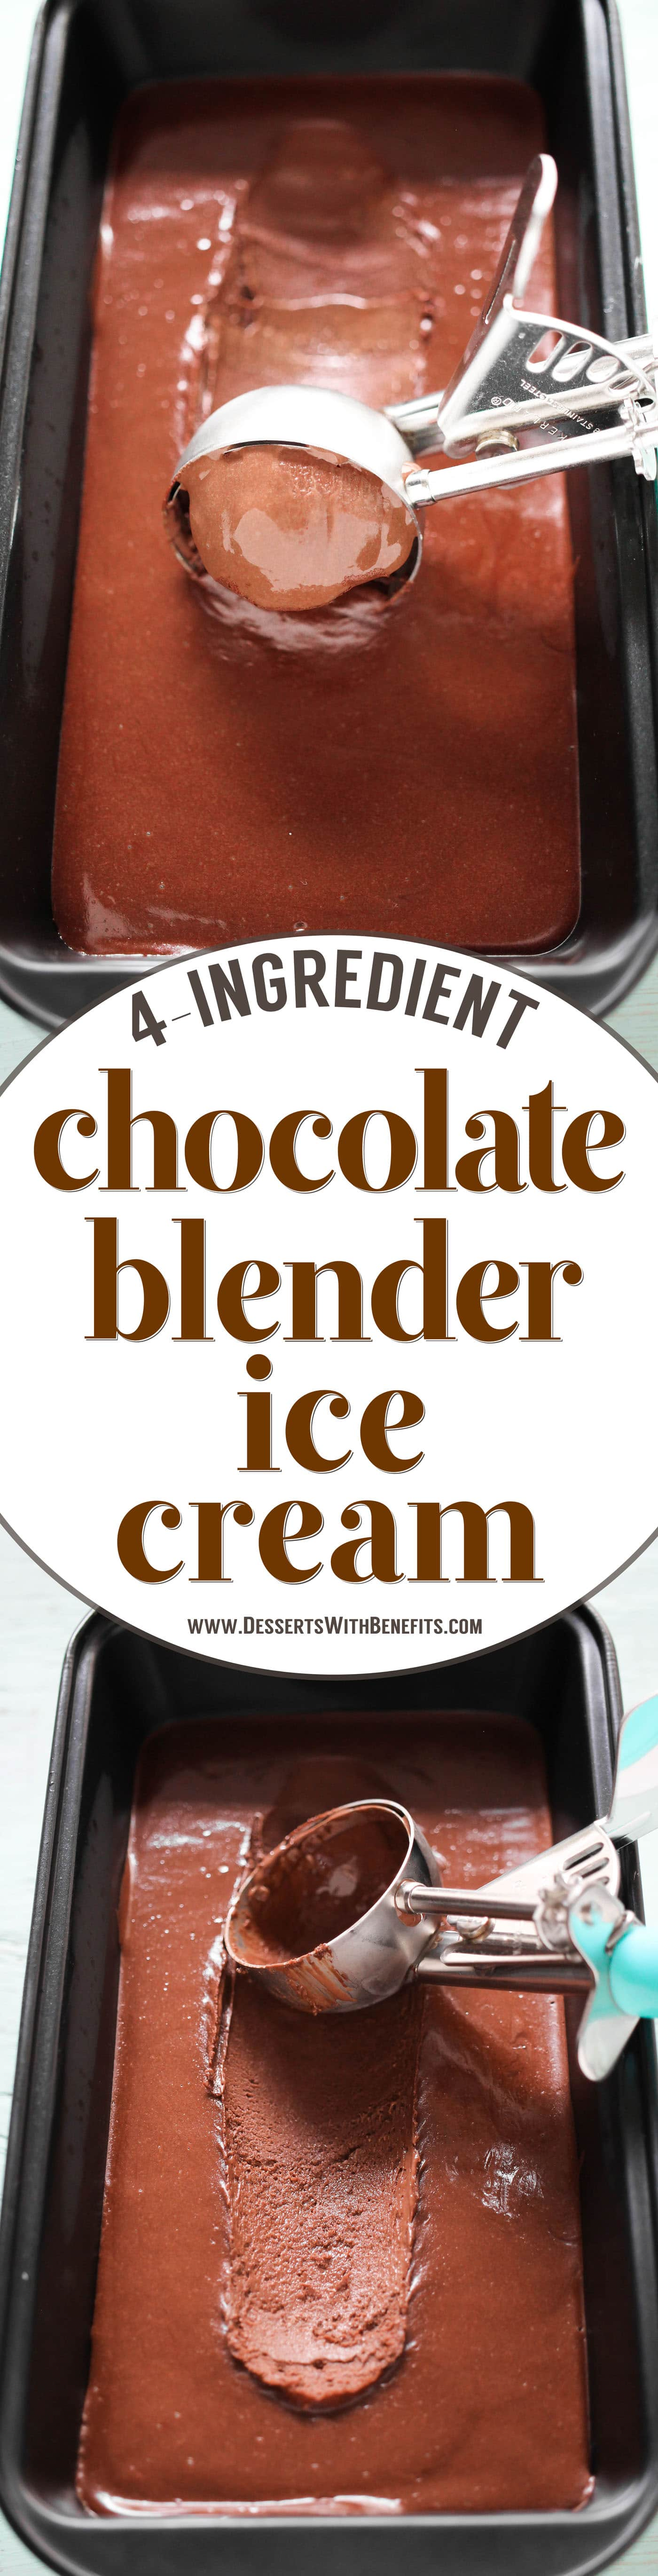 This 4-ingredient No-Churn Chocolate Fudge Ice Cream is ultra creamy, incredibly rich, and perfectly sweet. Made in a blender too, so no ice cream maker required! It's refined sugar free, packed with protein, fiber, and healthy fats. This is ice cream at its best without the sugar, heavy cream, and eggs!